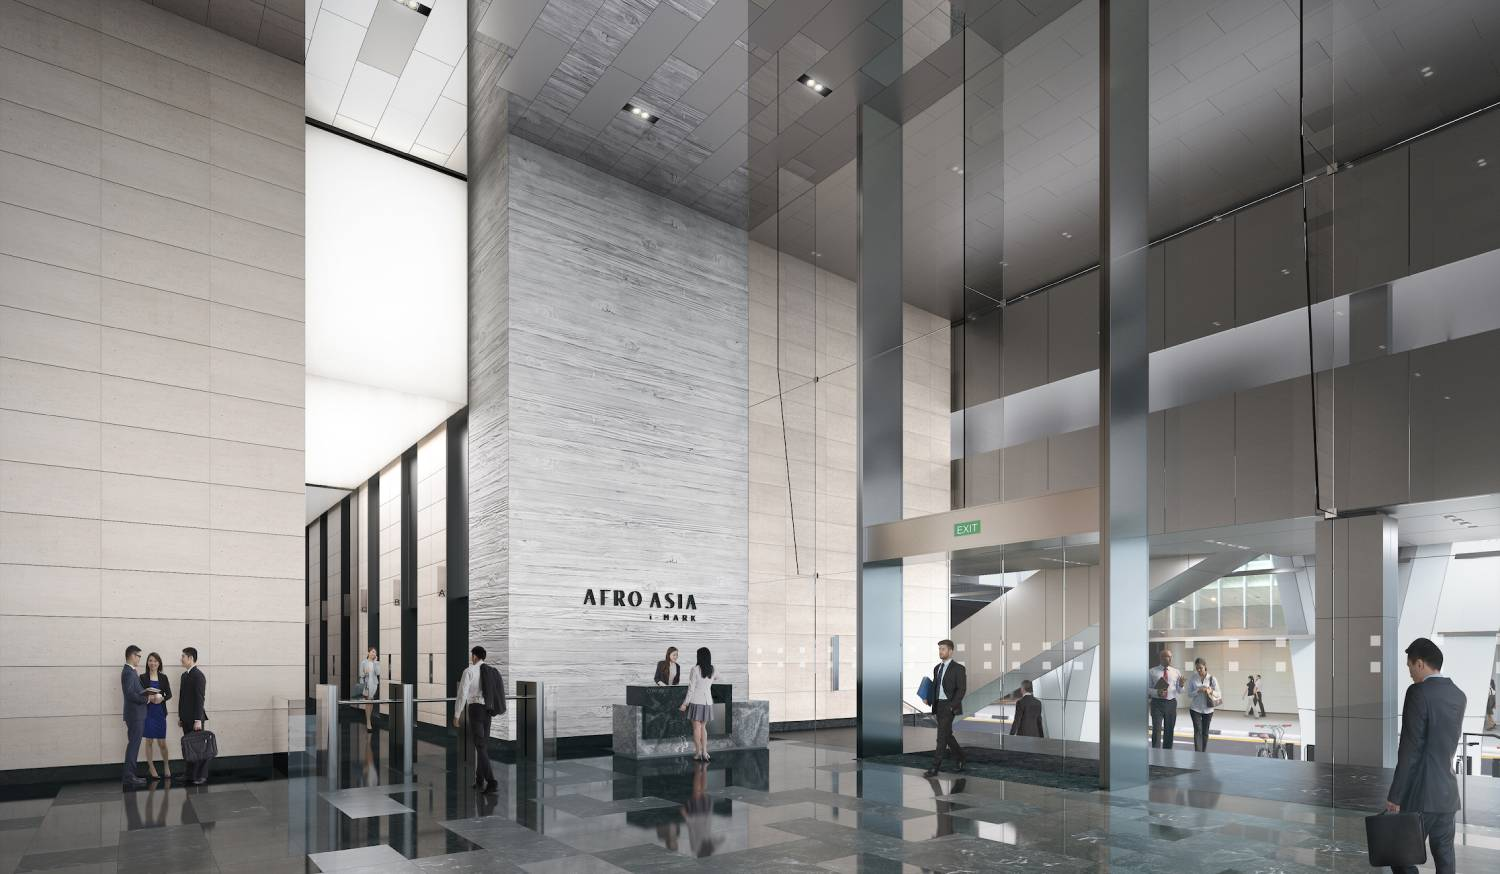 The lobby of the new building will have a ceiling height of 10m (Photo: Robinson Development)